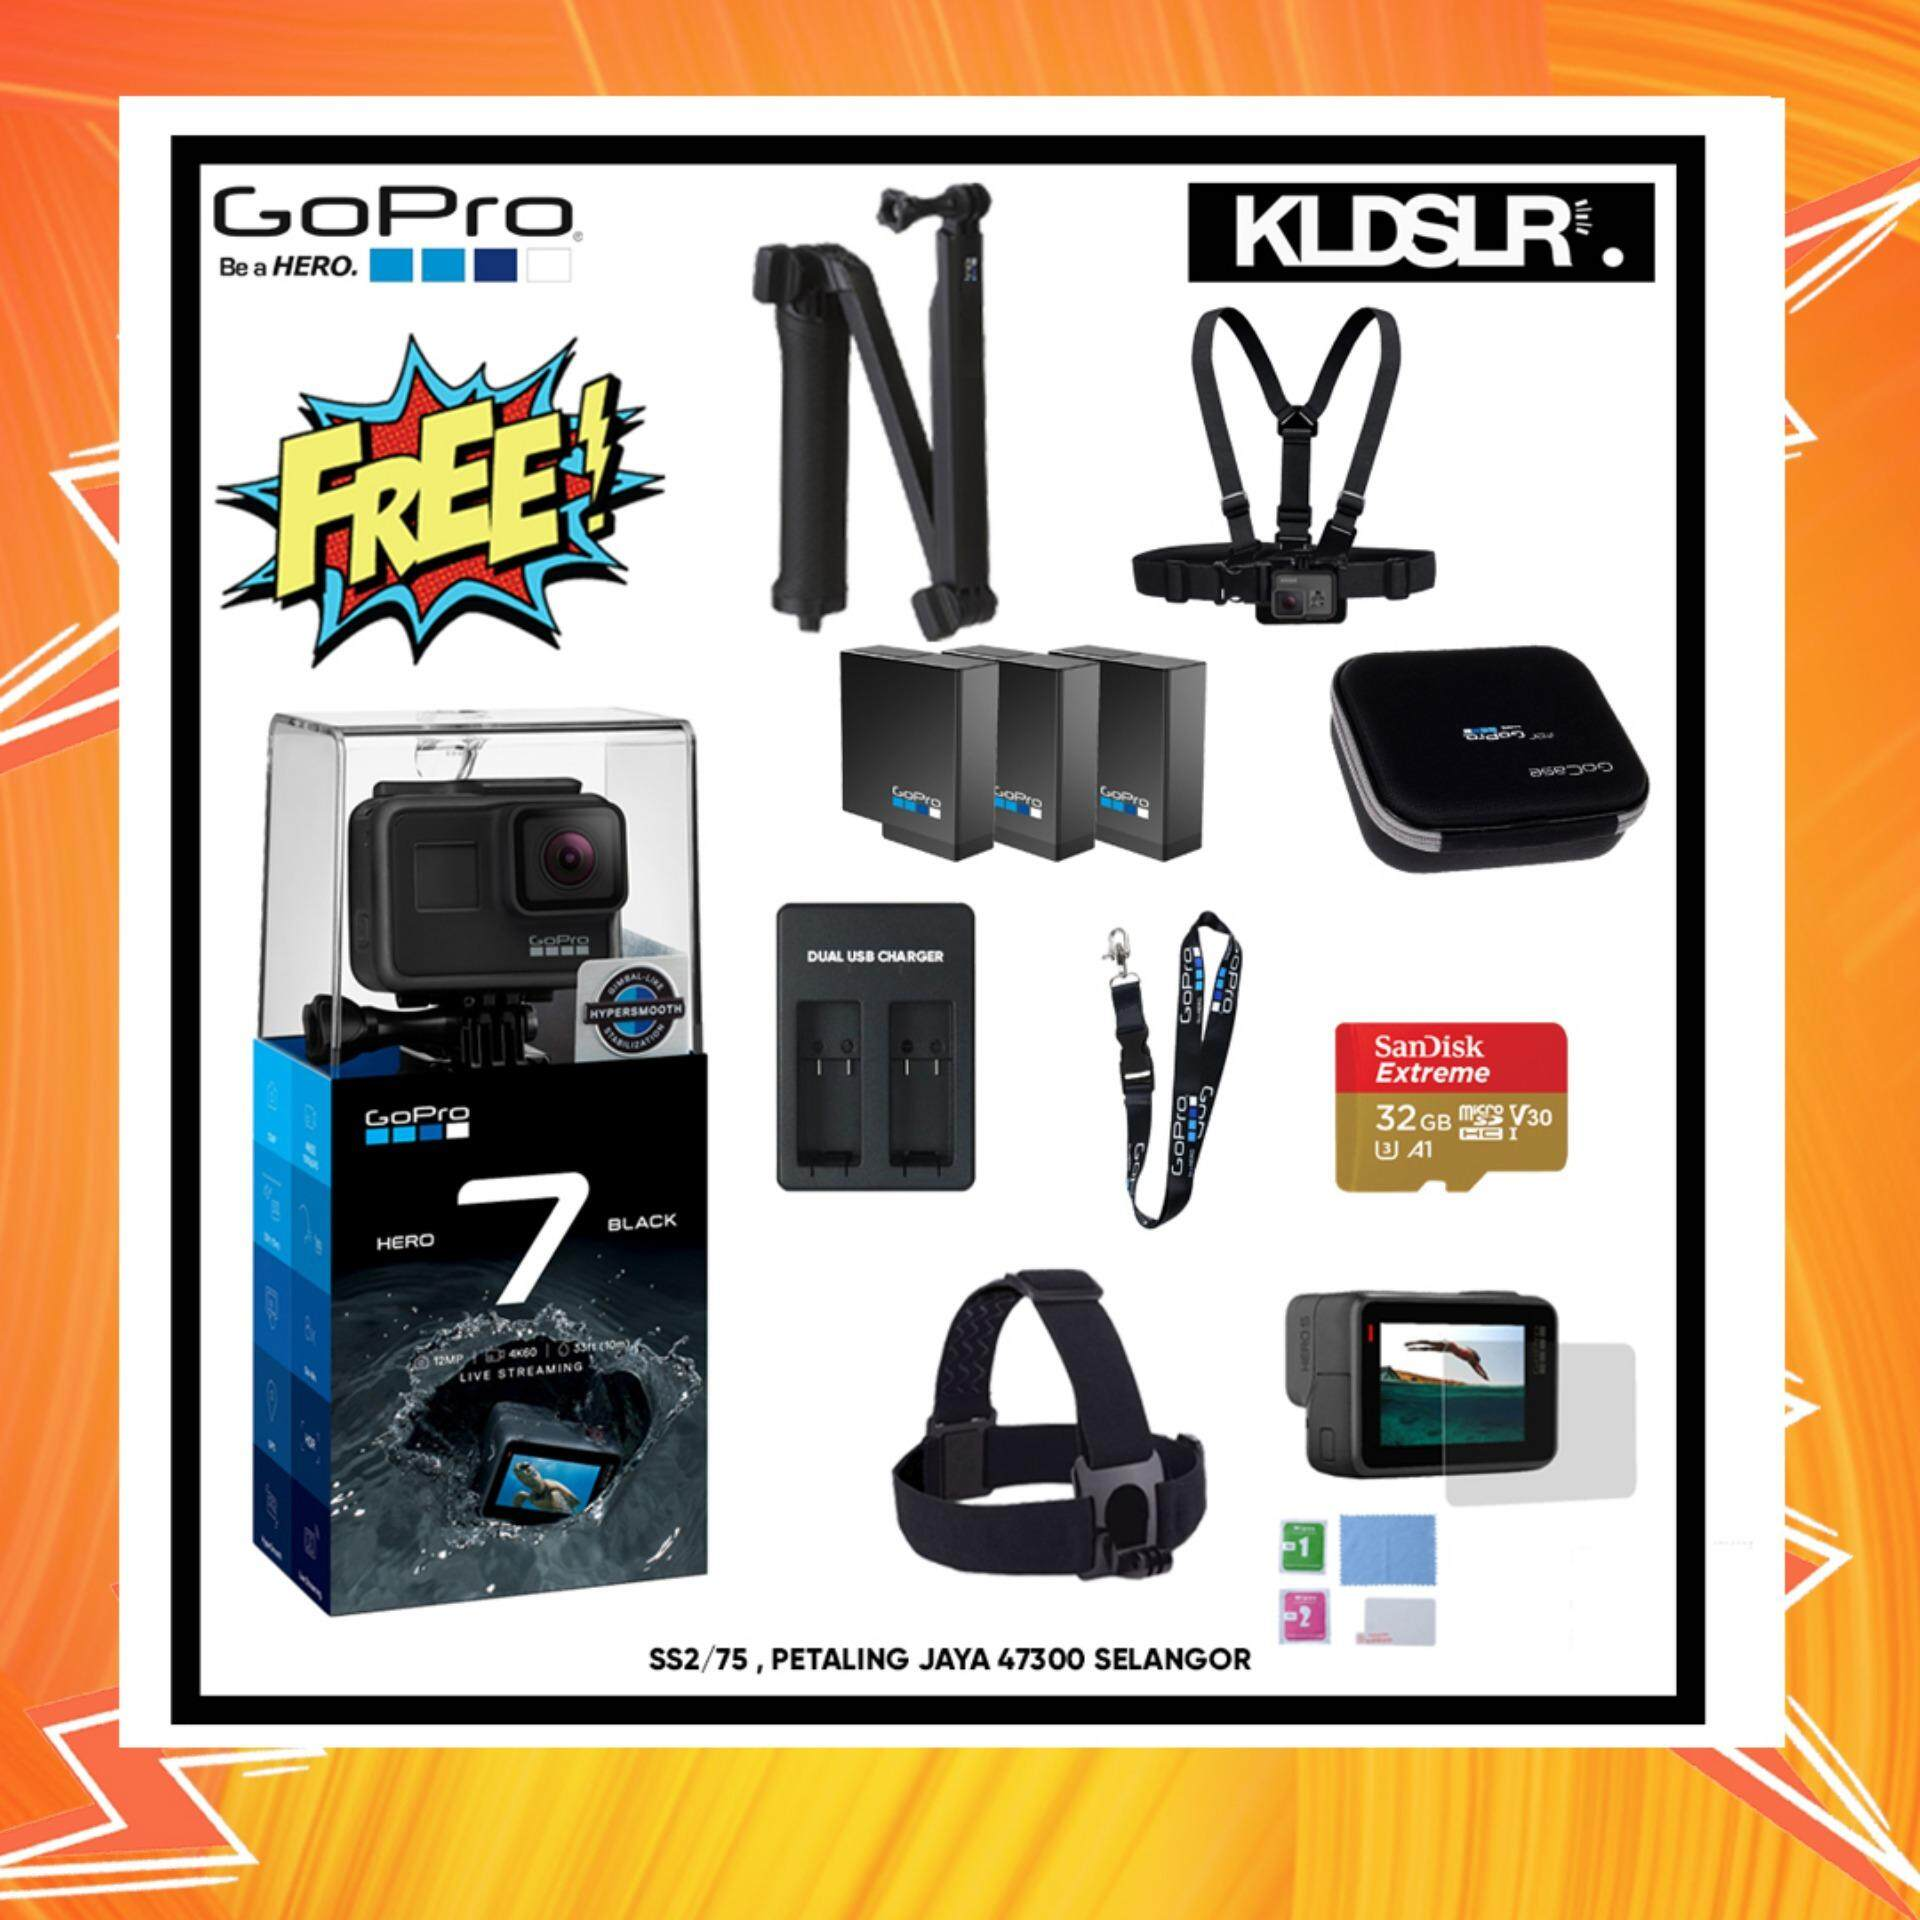 Daftar Harga Brica Bpro 5 Alpha Edition 4k Action Cam Free Memory Asus X441na Notebook 14ampquot N3350 2gb 500gb Endless Gopro Camera With Best Online Price In Malaysia